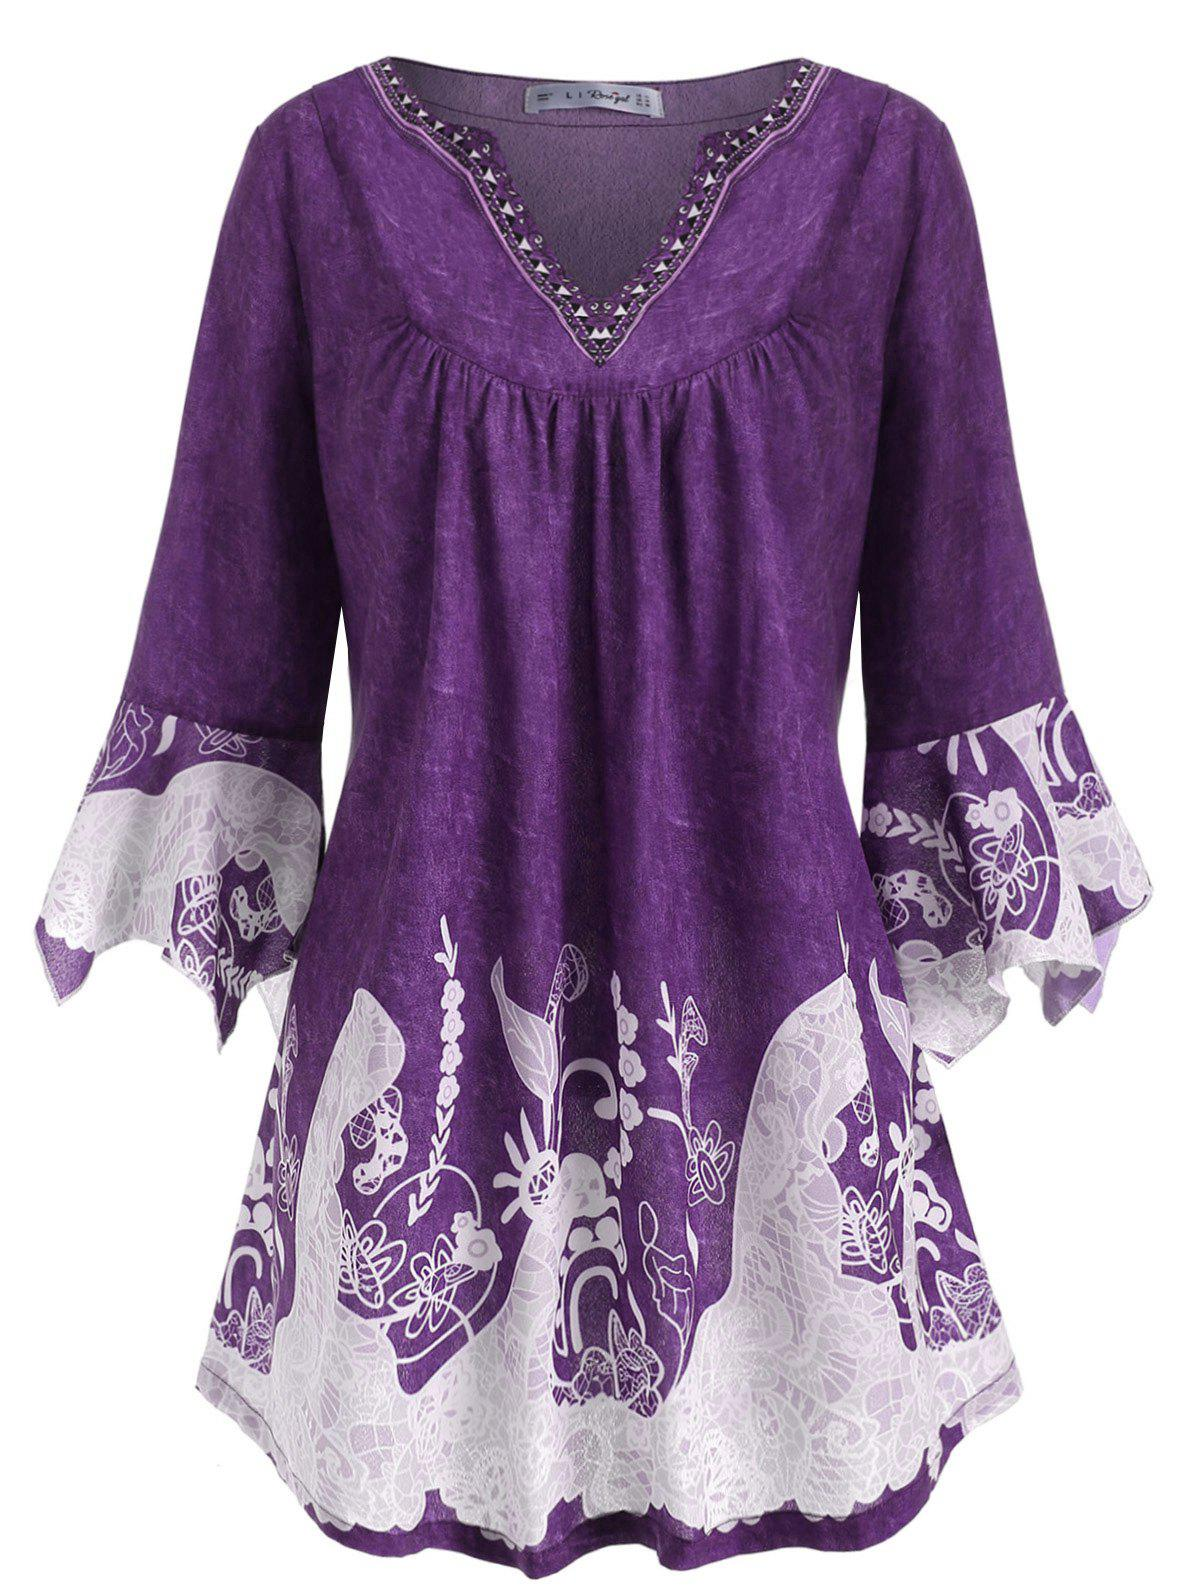 Notched Printed Flare Sleeve Plus Size Top - PURPLE L